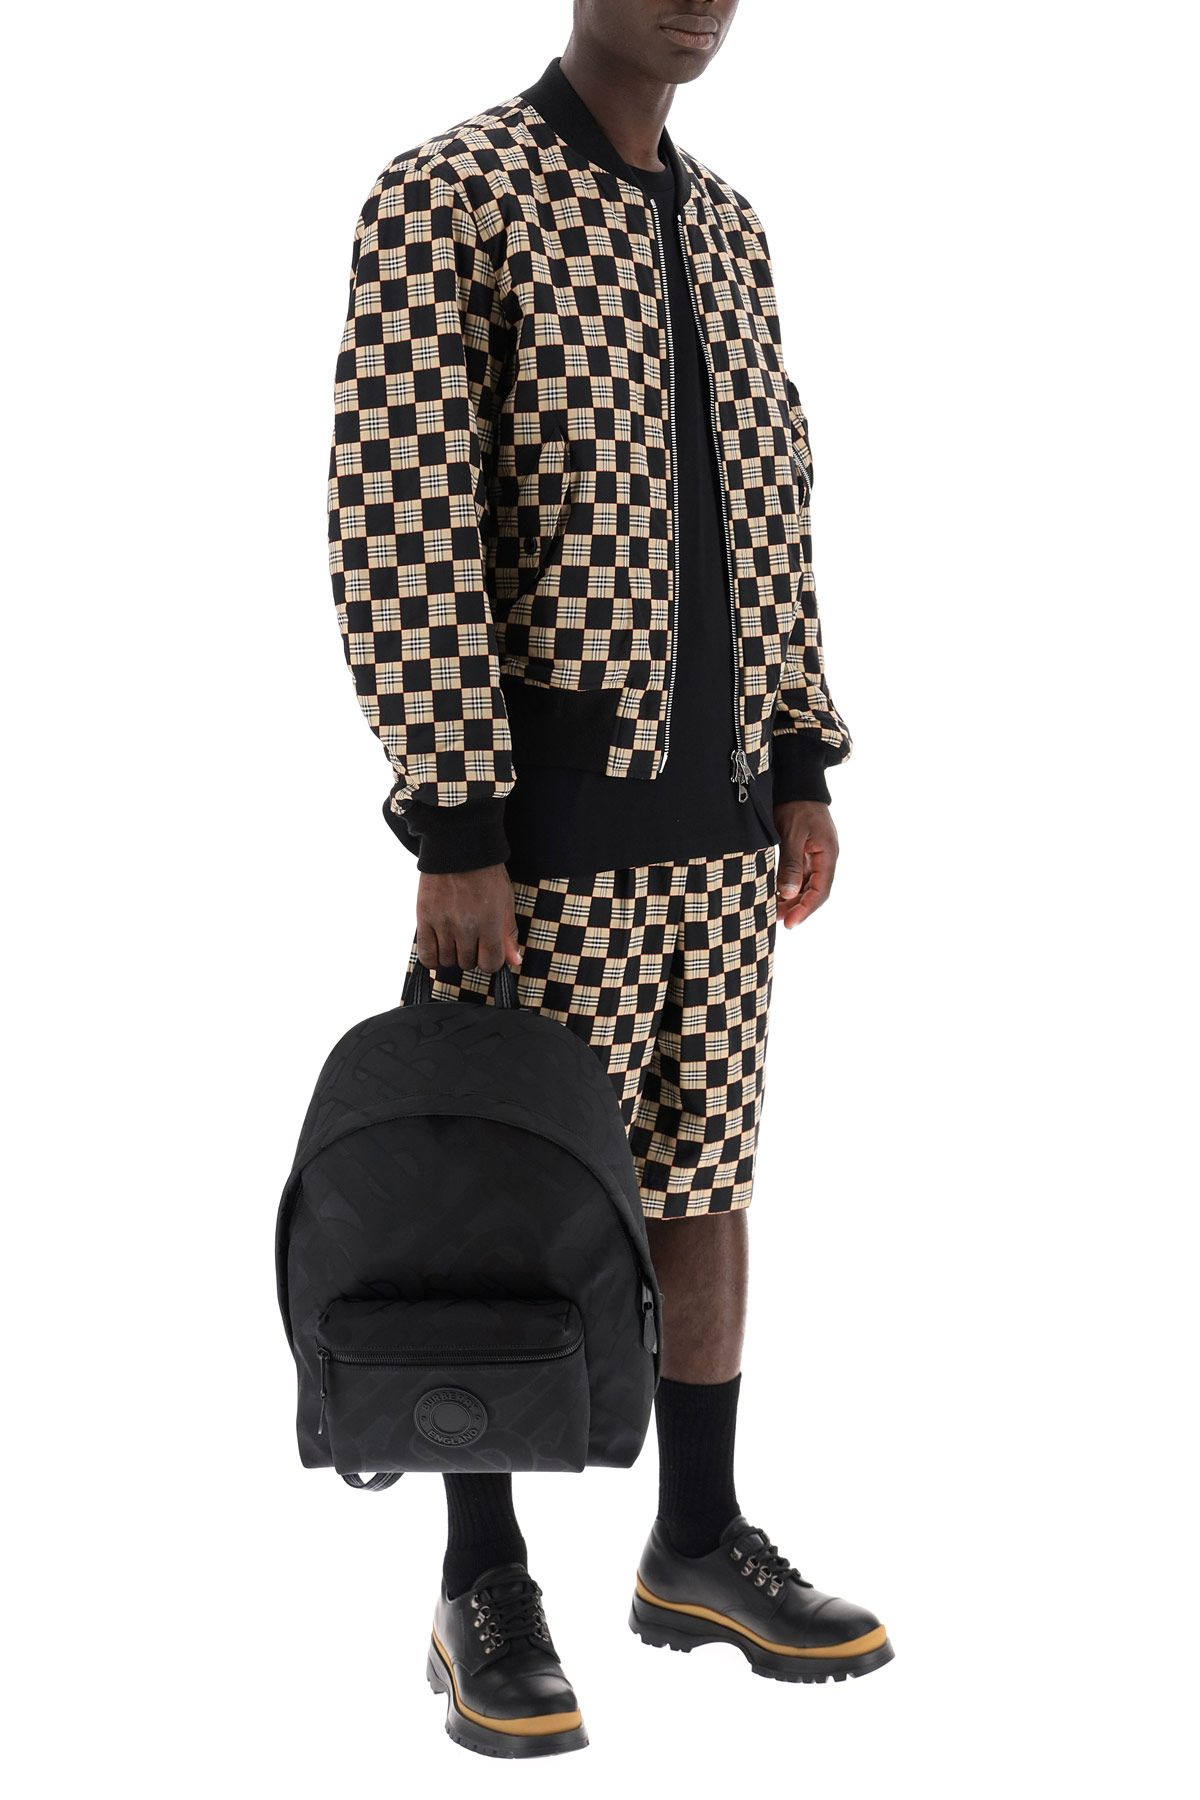 burberry clothing men chequered and check bomber jacket